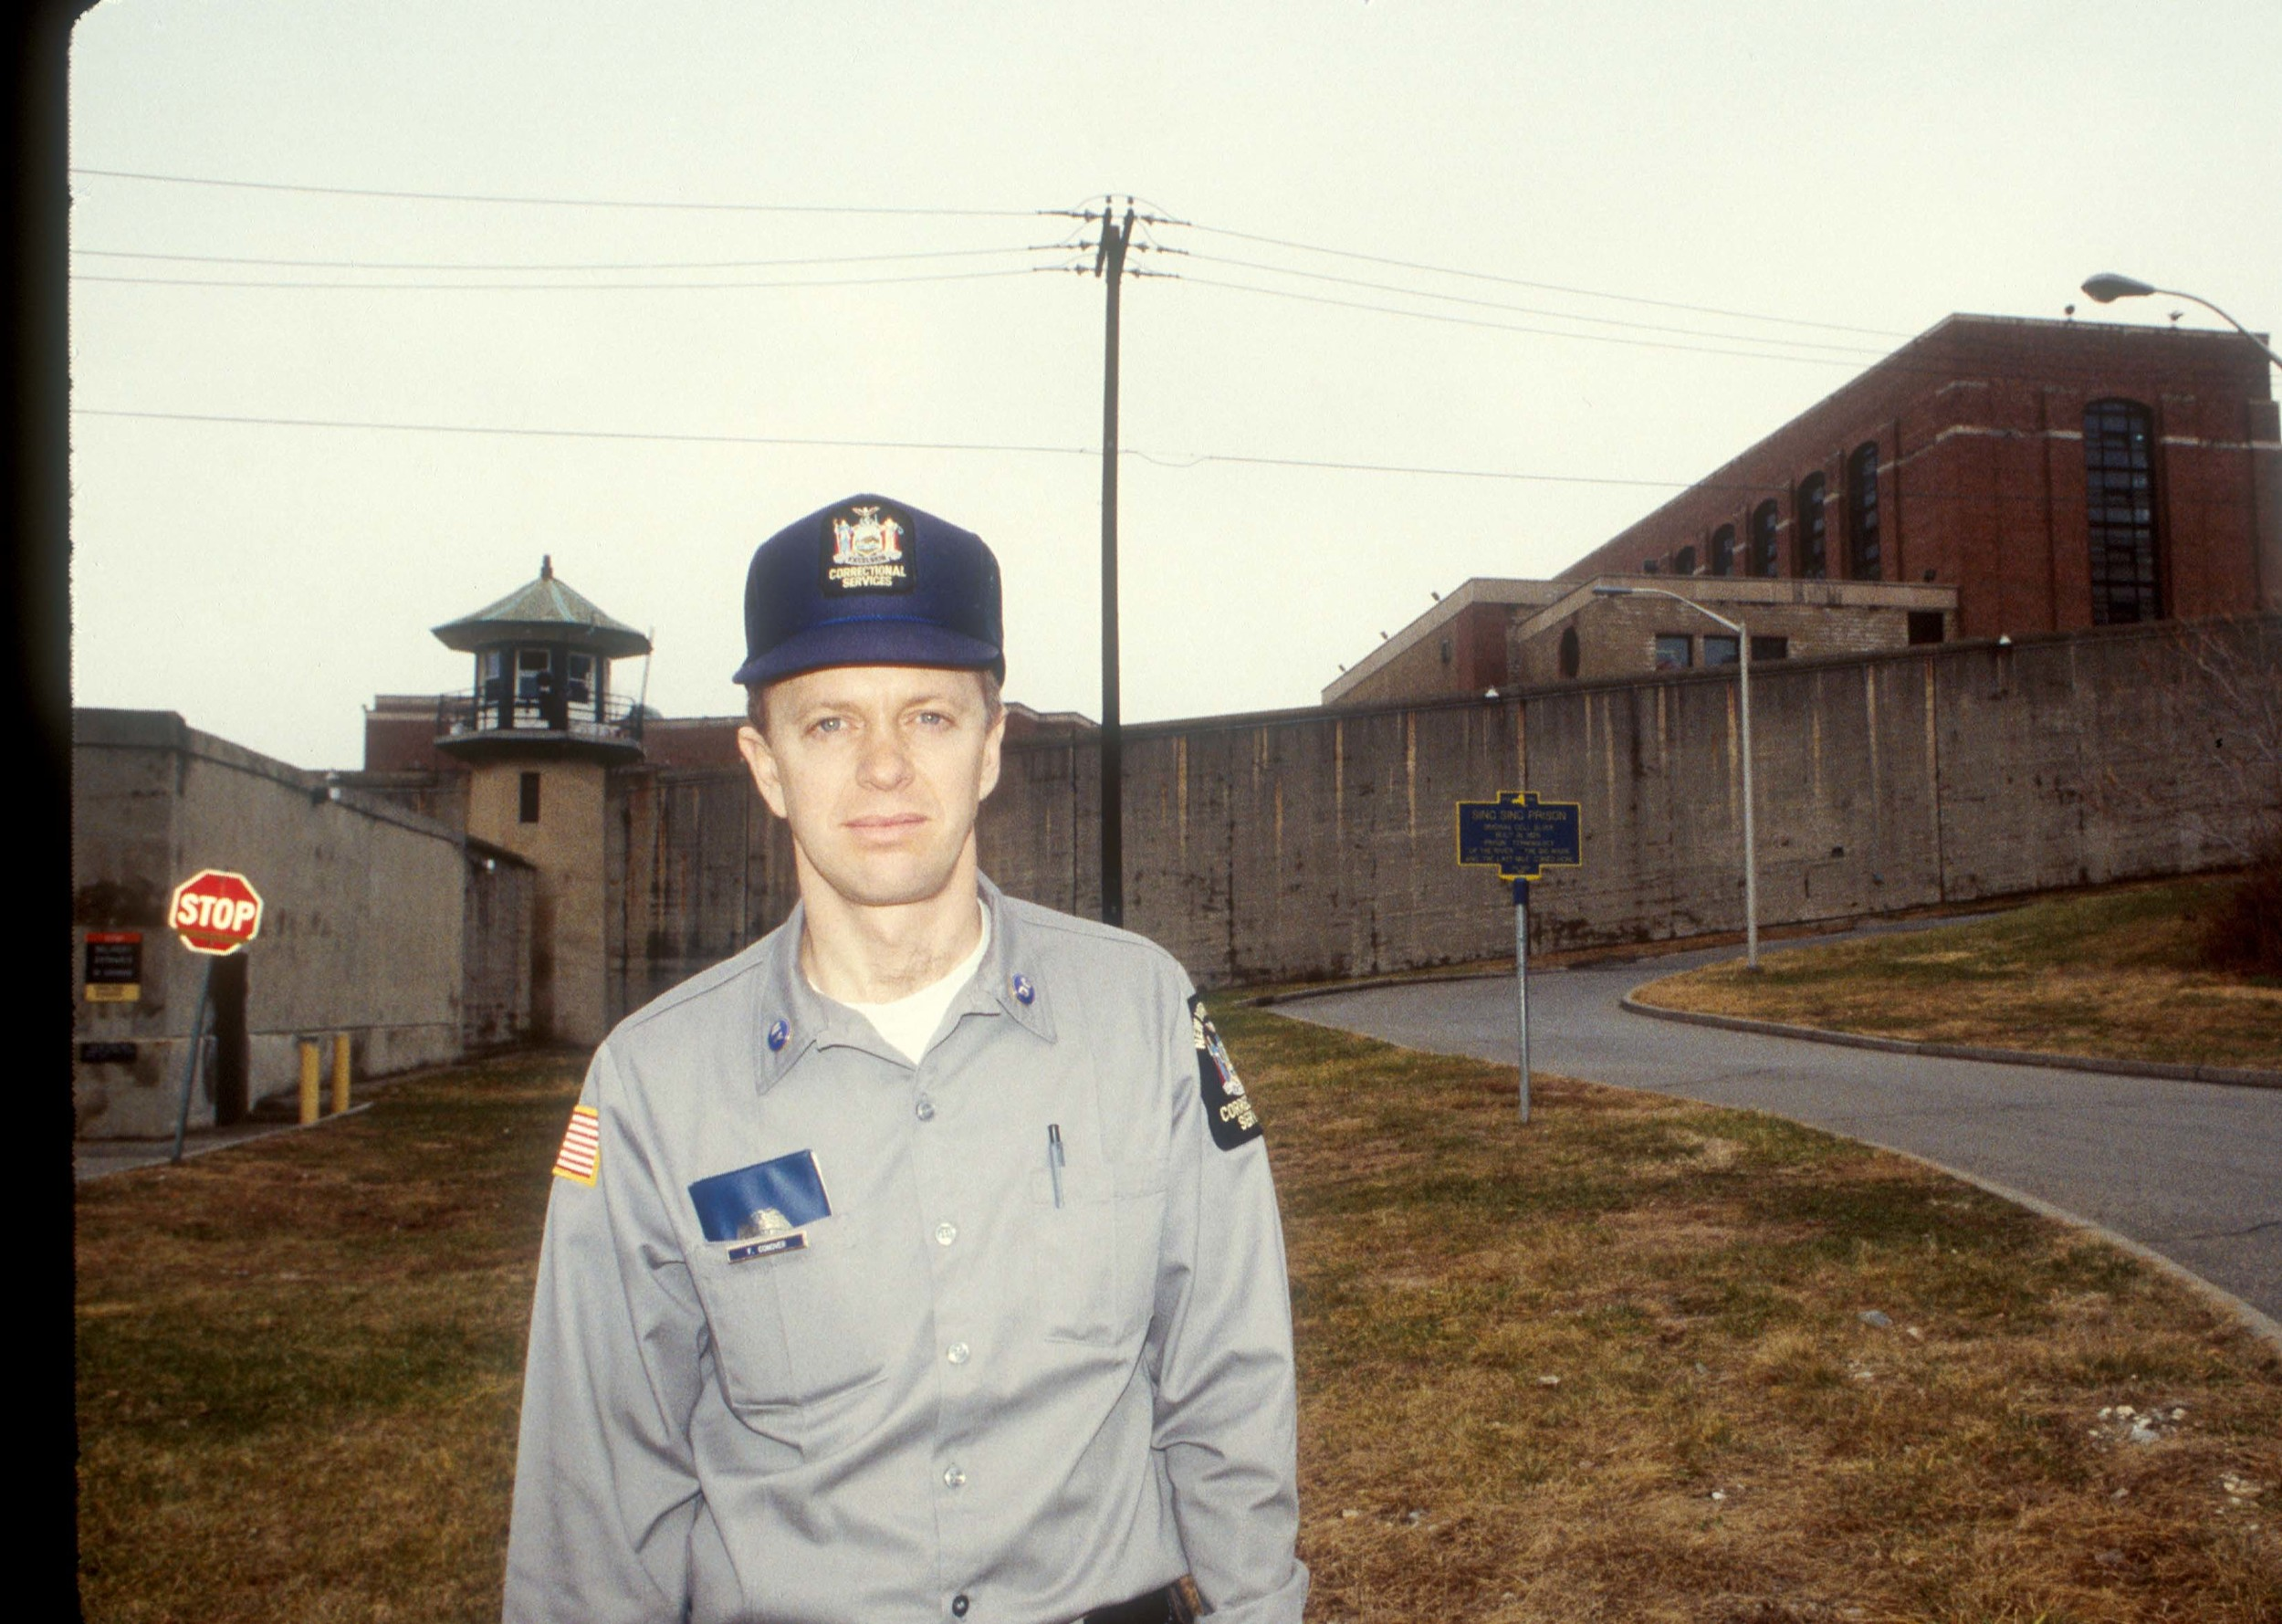 ted conover and the sing sing prison system Biography ted conover is a writer best known for his participatory investigations: riding the rails with tramps, traveling with the mexican undocumented, and working at sing sing prison.